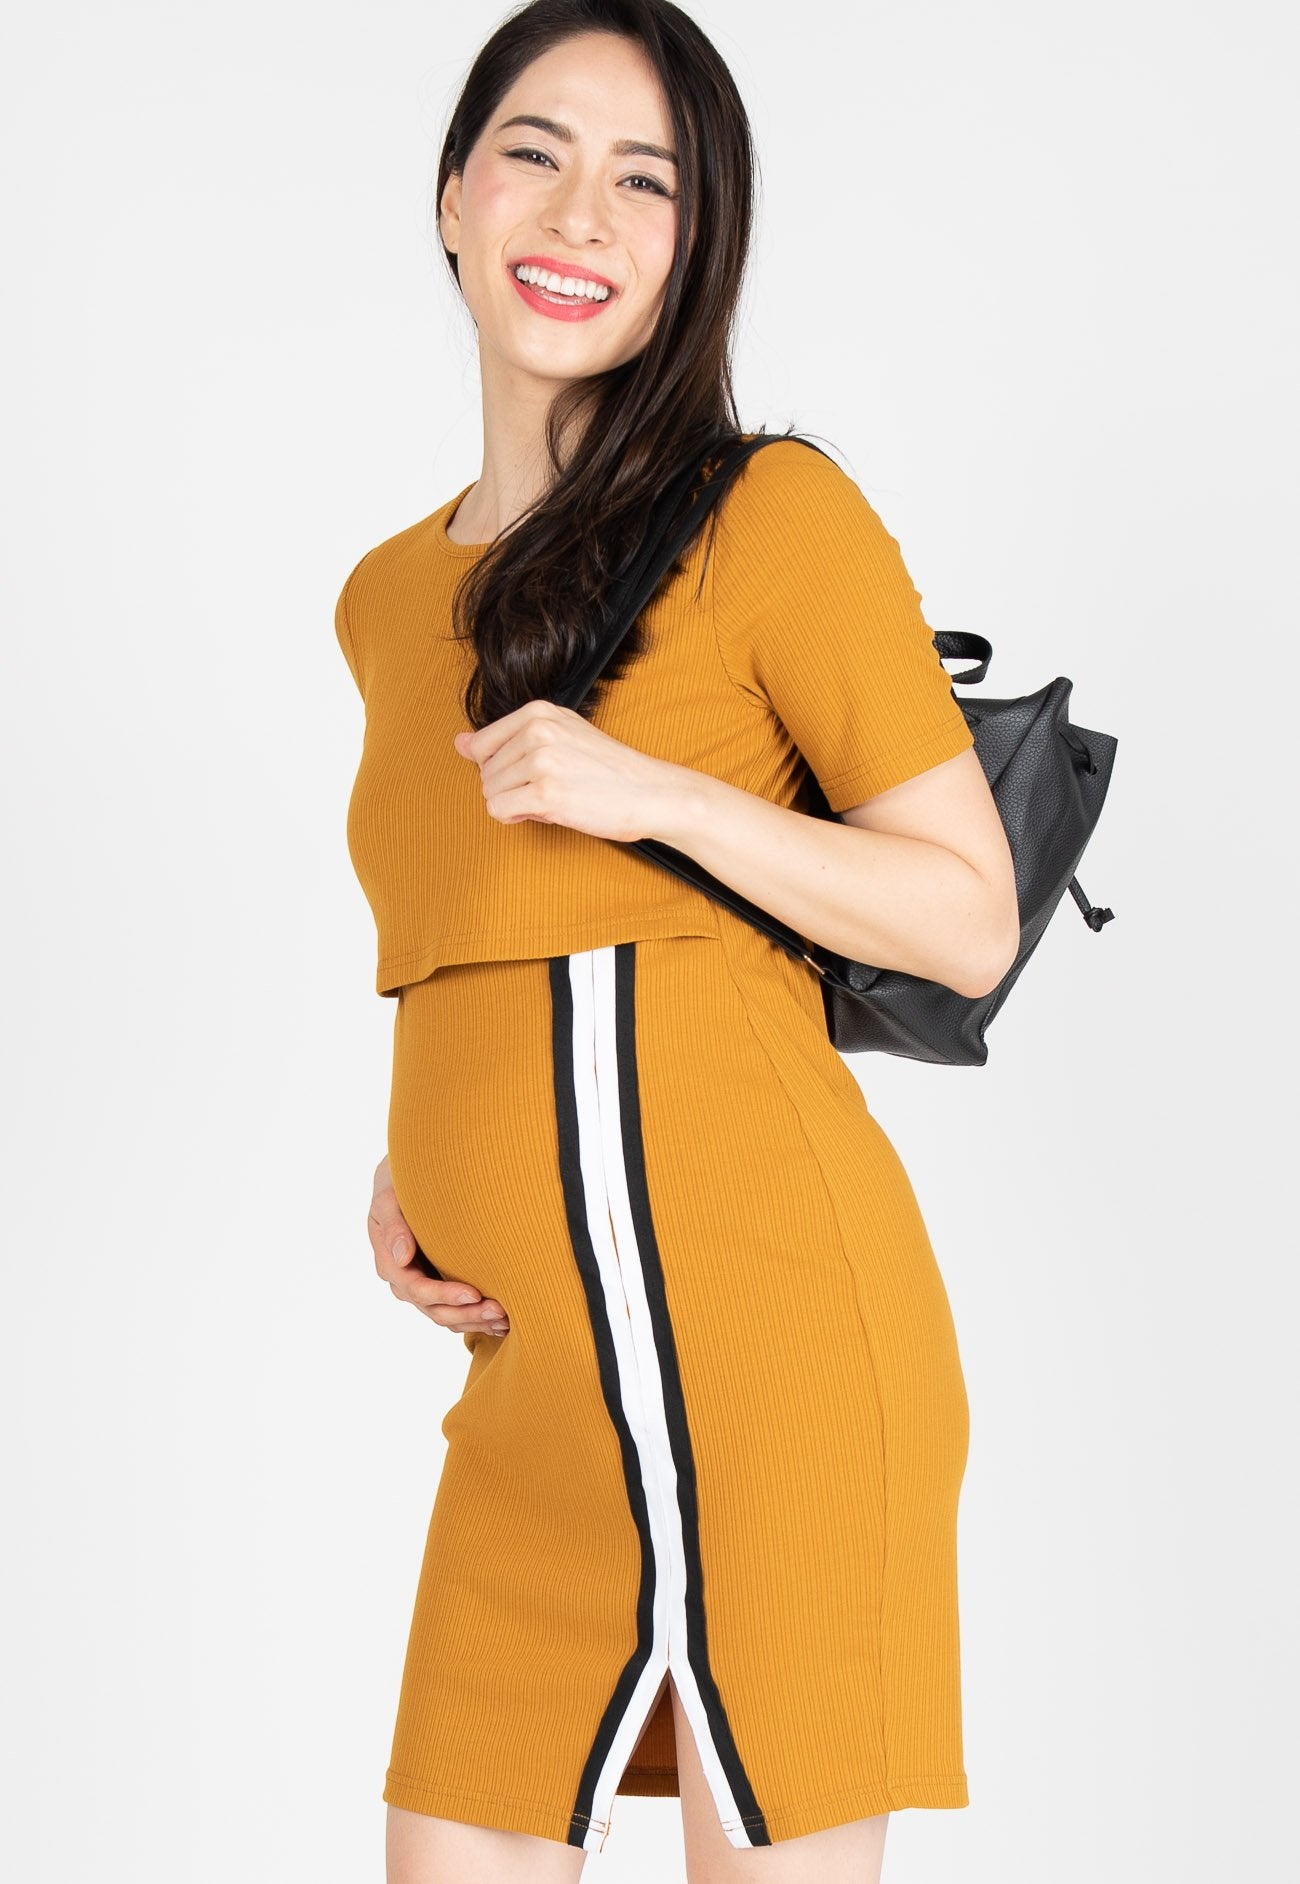 Go-Getter Bodycon Nursing Dress in Yellow  by Jump Eat Cry - Maternity and nursing wear